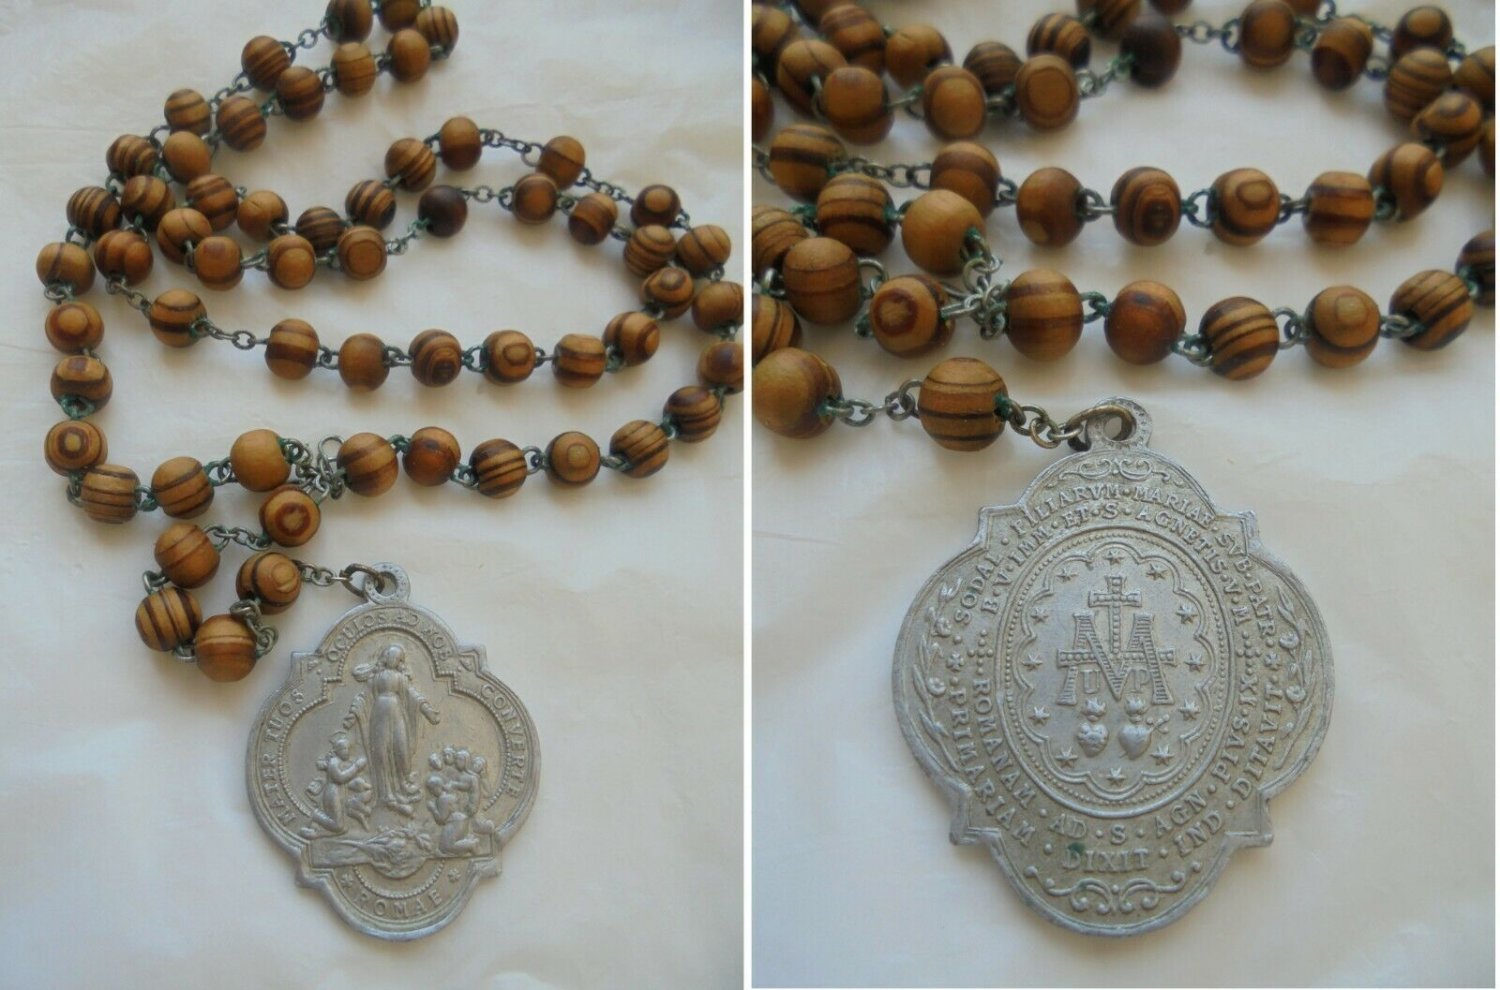 PRAYING ROSARY in olive wood Immaculate Conception Pope Pius IX Original